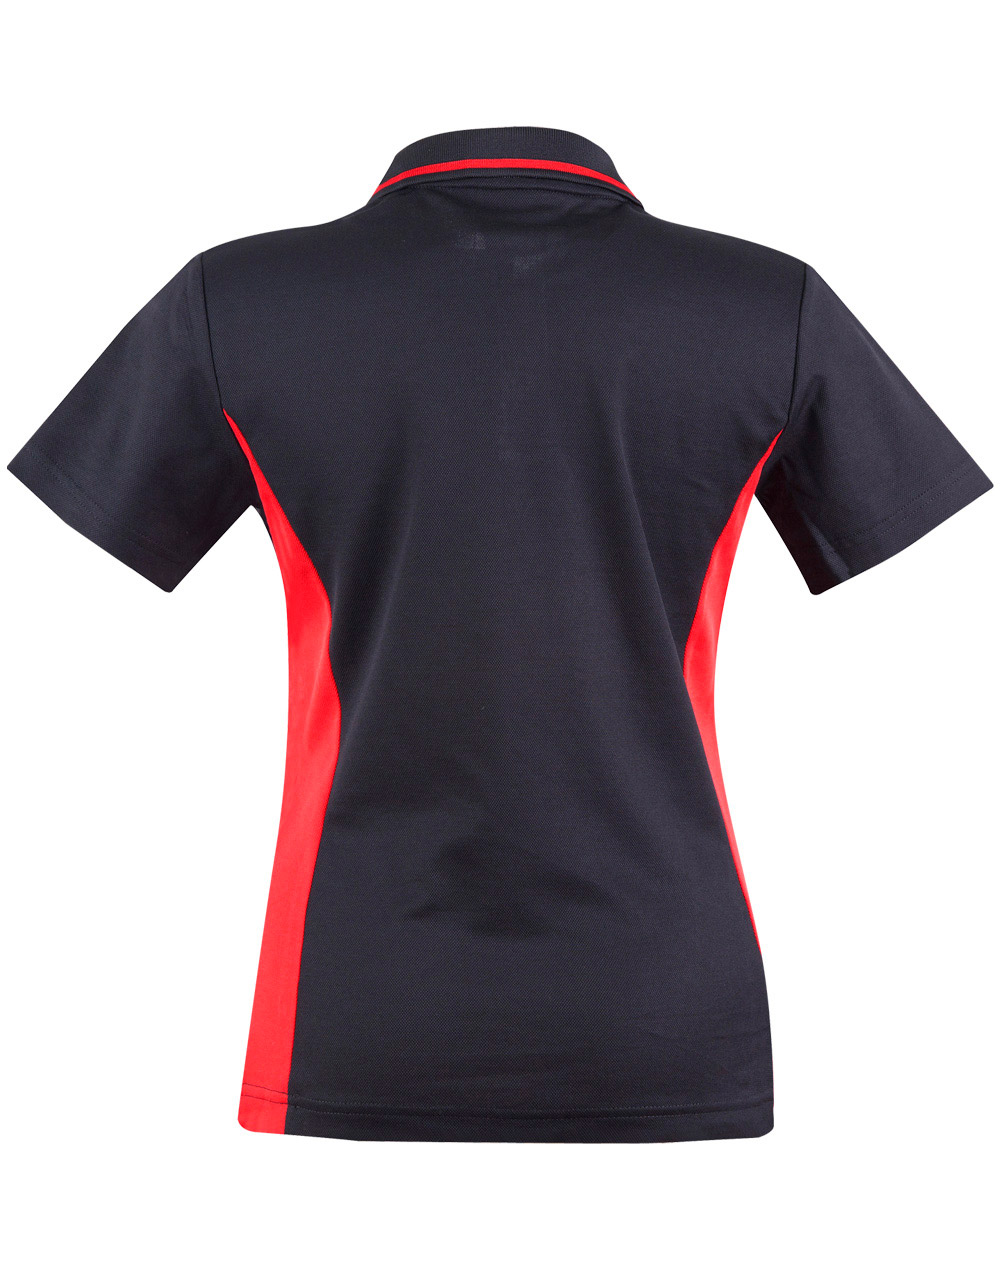 https://s3-ap-southeast-1.amazonaws.com/ws-imgs/POLOSHIRTS/PS74_BlackRed_Back.jpg